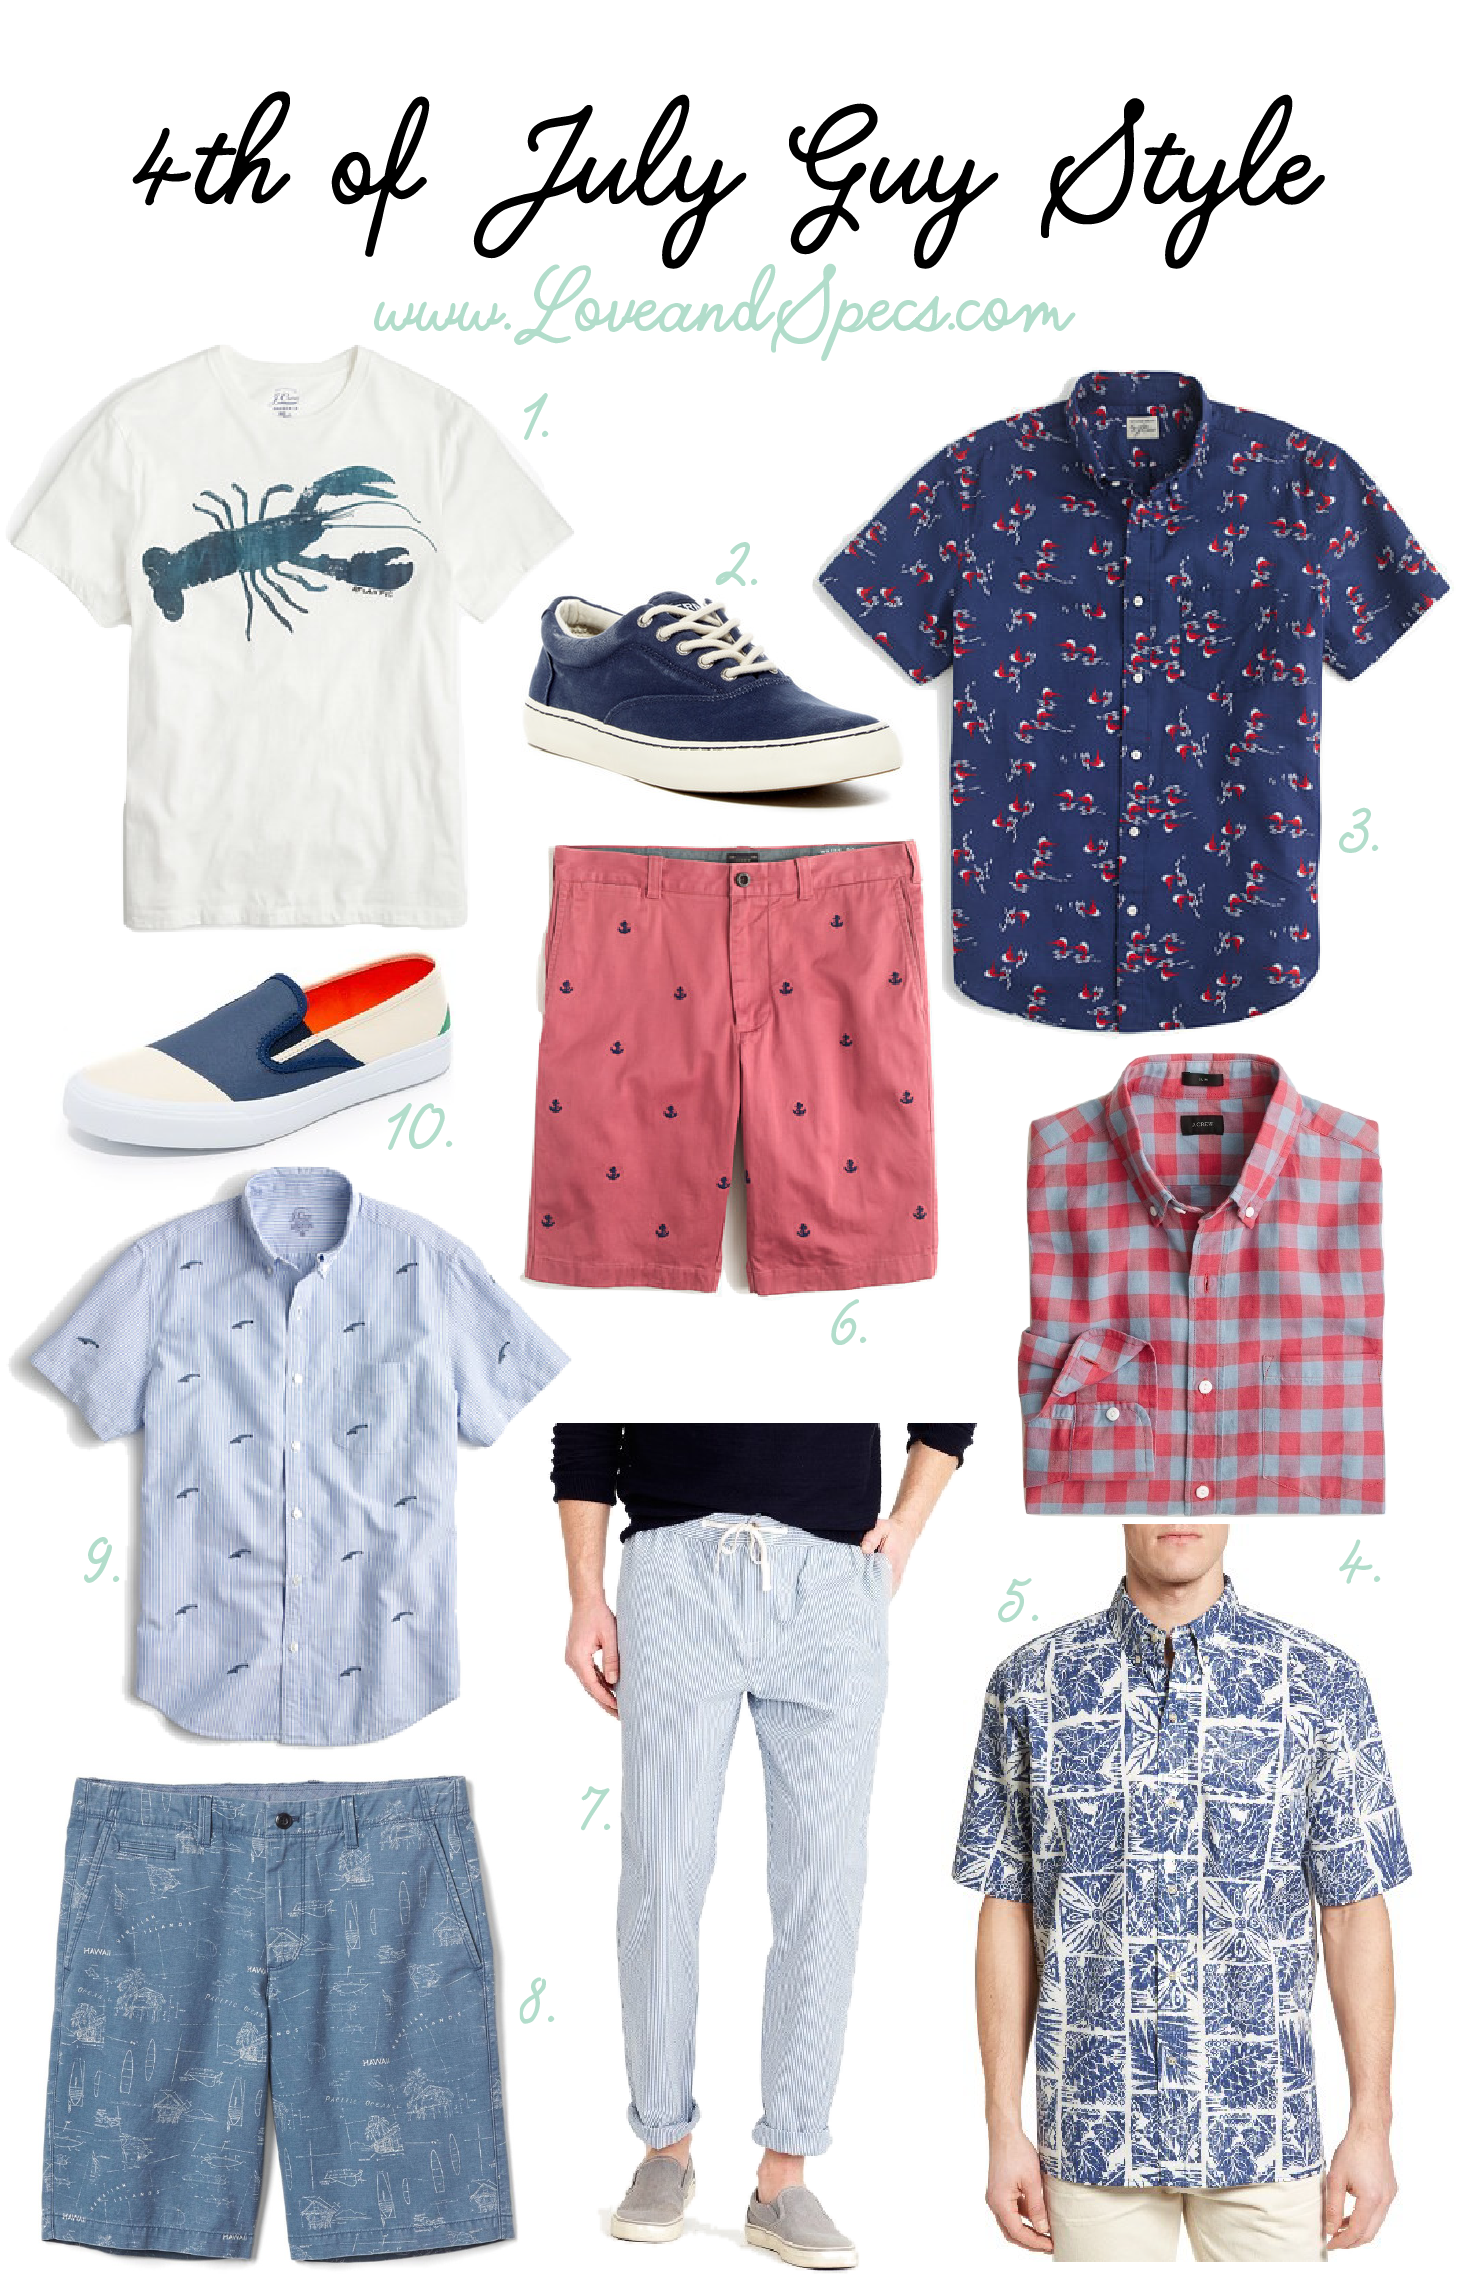 mens-4th-of-july-style.jpeg